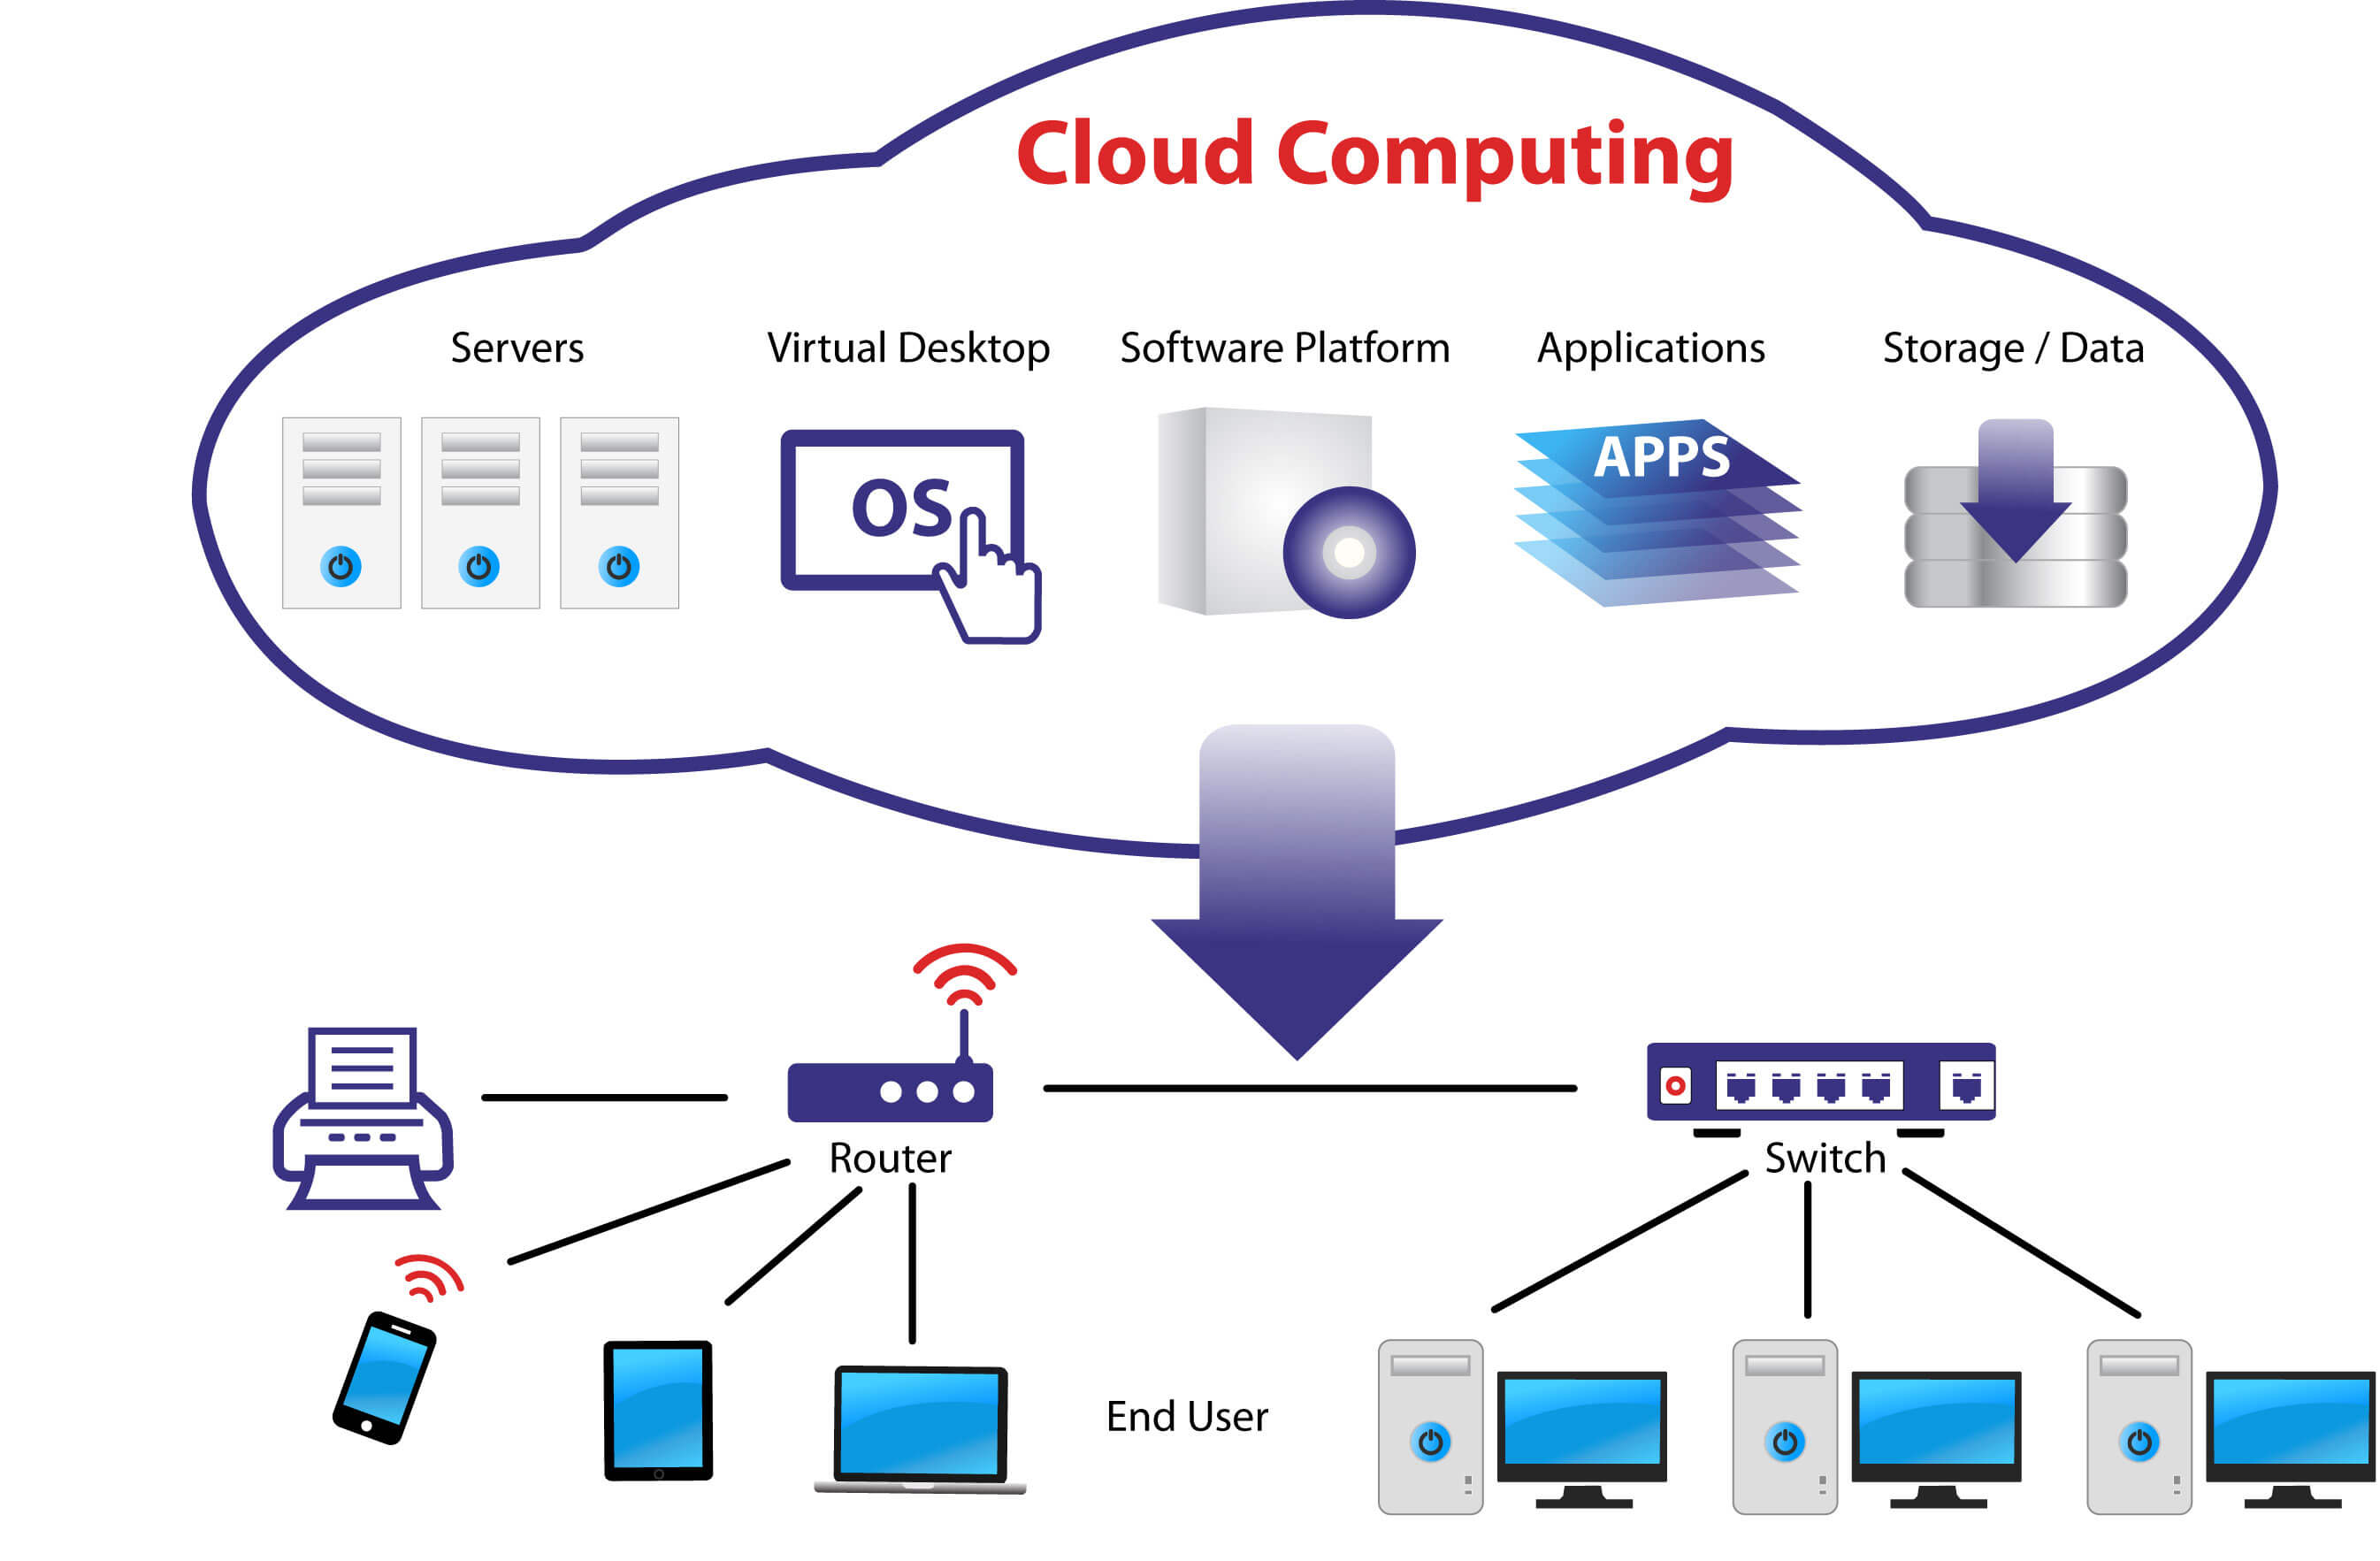 saas architecture diagram software for drawing scientific diagrams cloud computing projects and training engineering